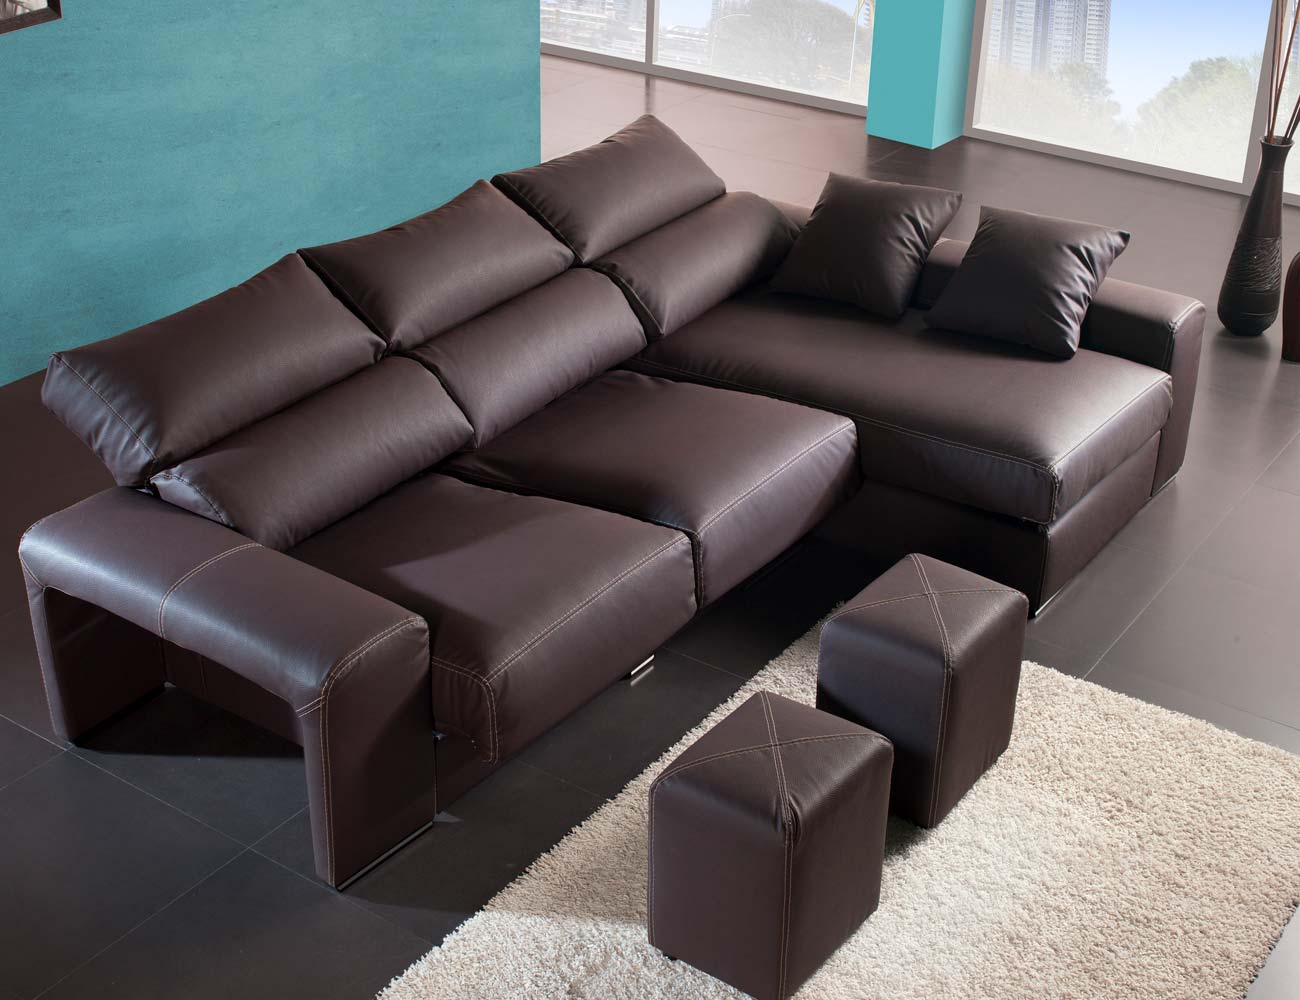 Sofa chaiselongue moderno polipiel chocolate poufs taburetes50